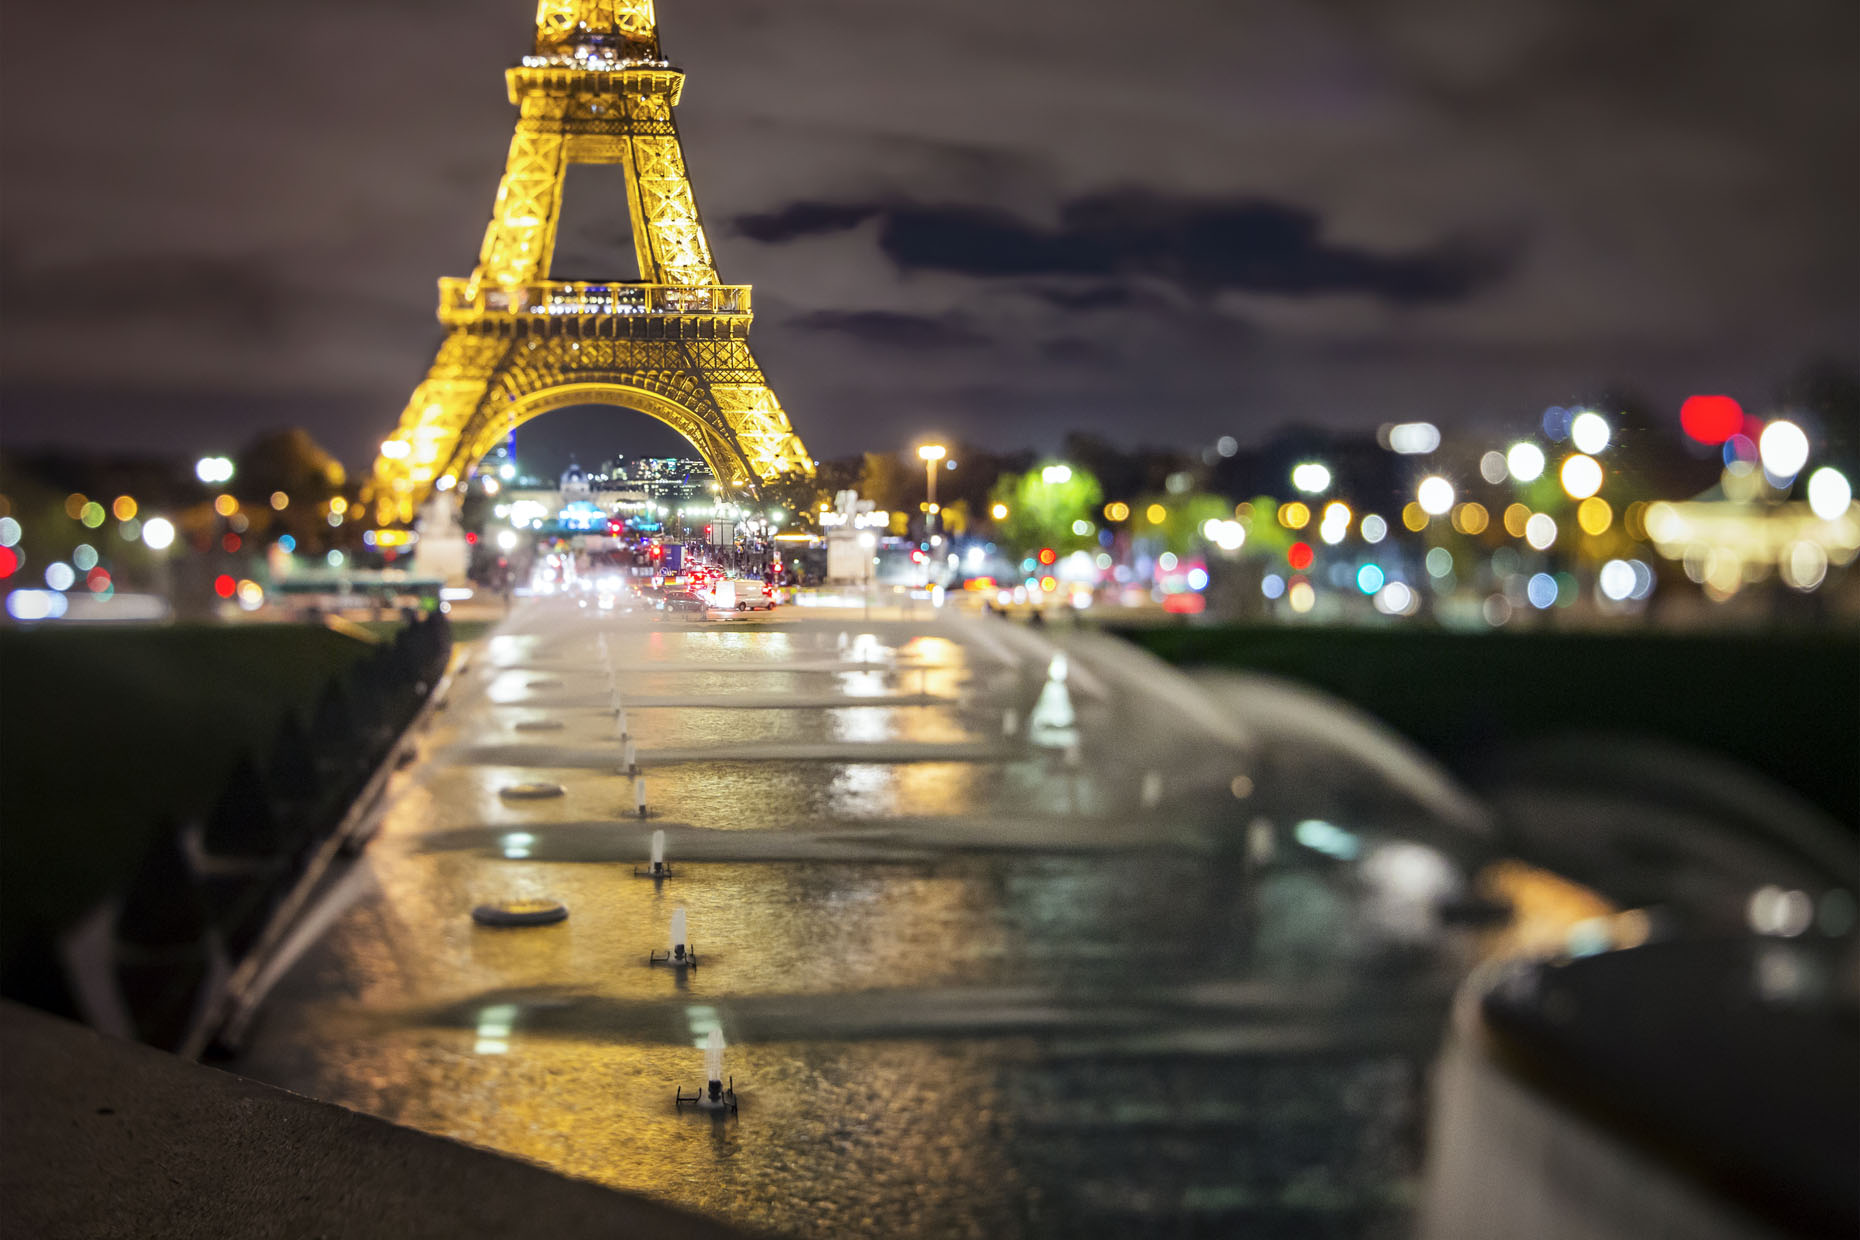 France_Paris_EiffelTowerTwilight_10_webuse.jpg